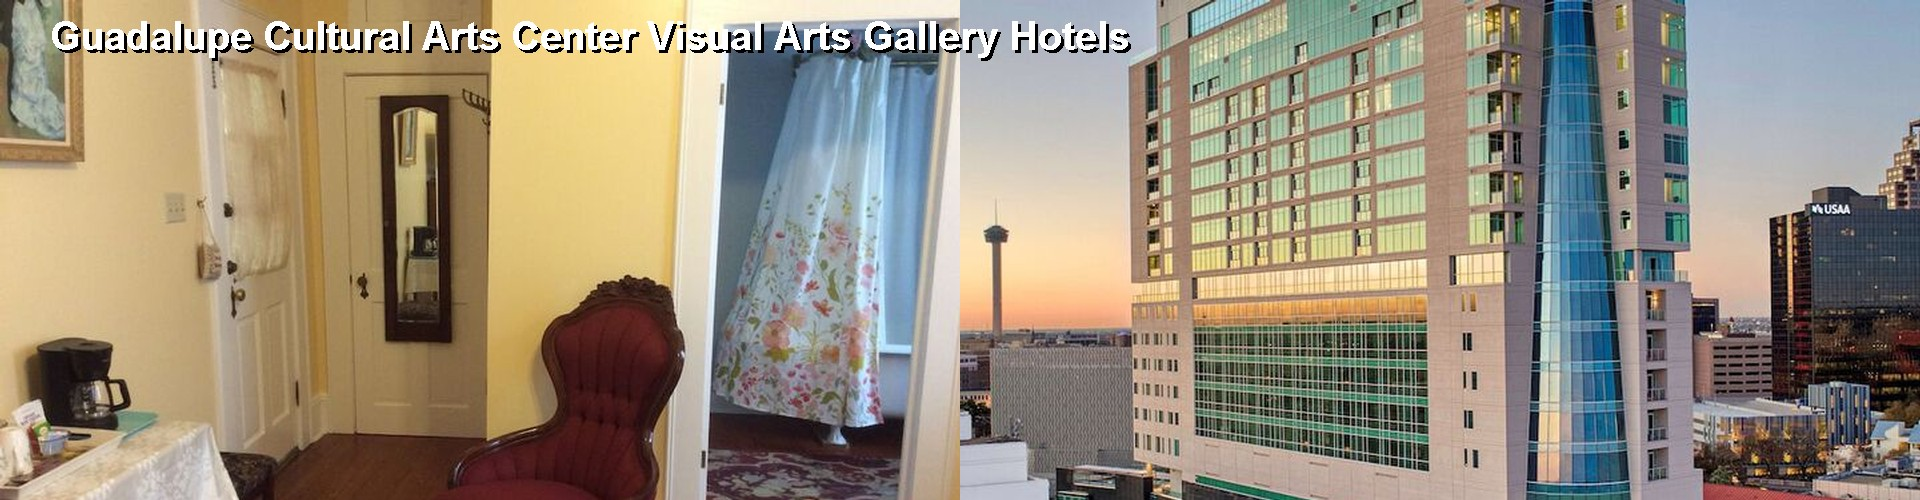 5 Best Hotels near Guadalupe Cultural Arts Center Visual Arts Gallery